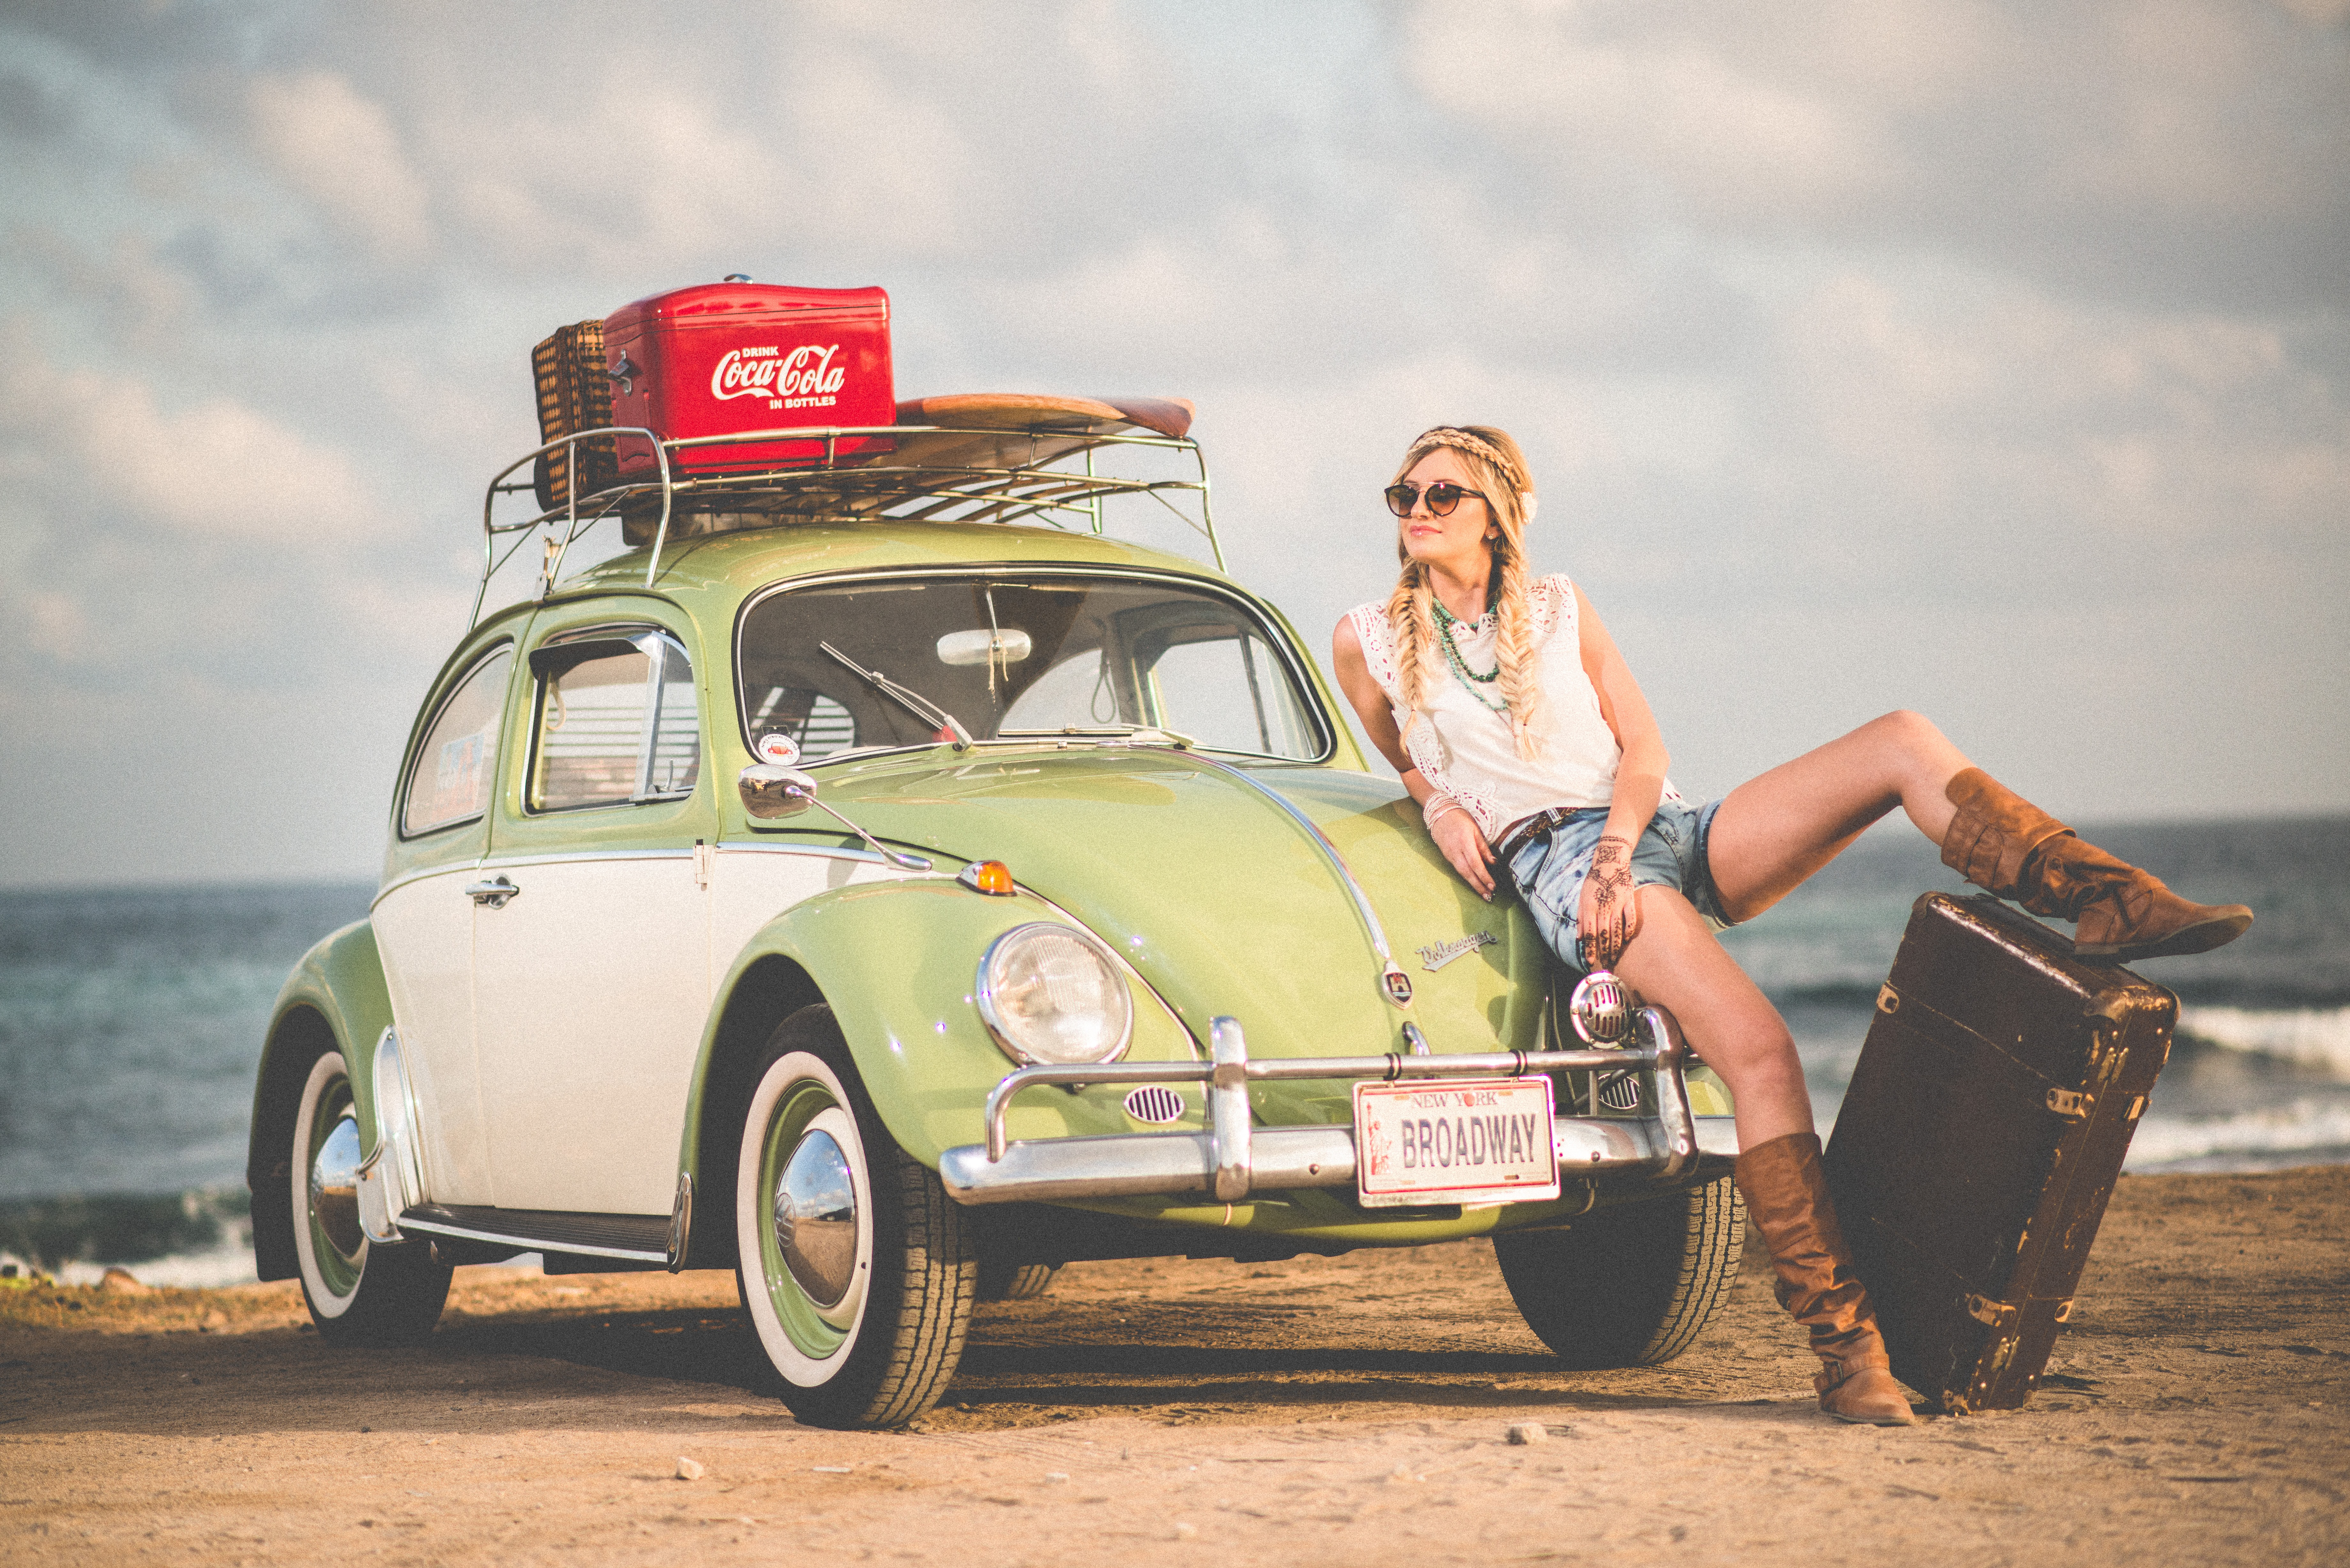 Bohemian woman with braided hair, sunglass, and a luggage sitting on top of a vintage volkswagen with a coca cola case on the beach.